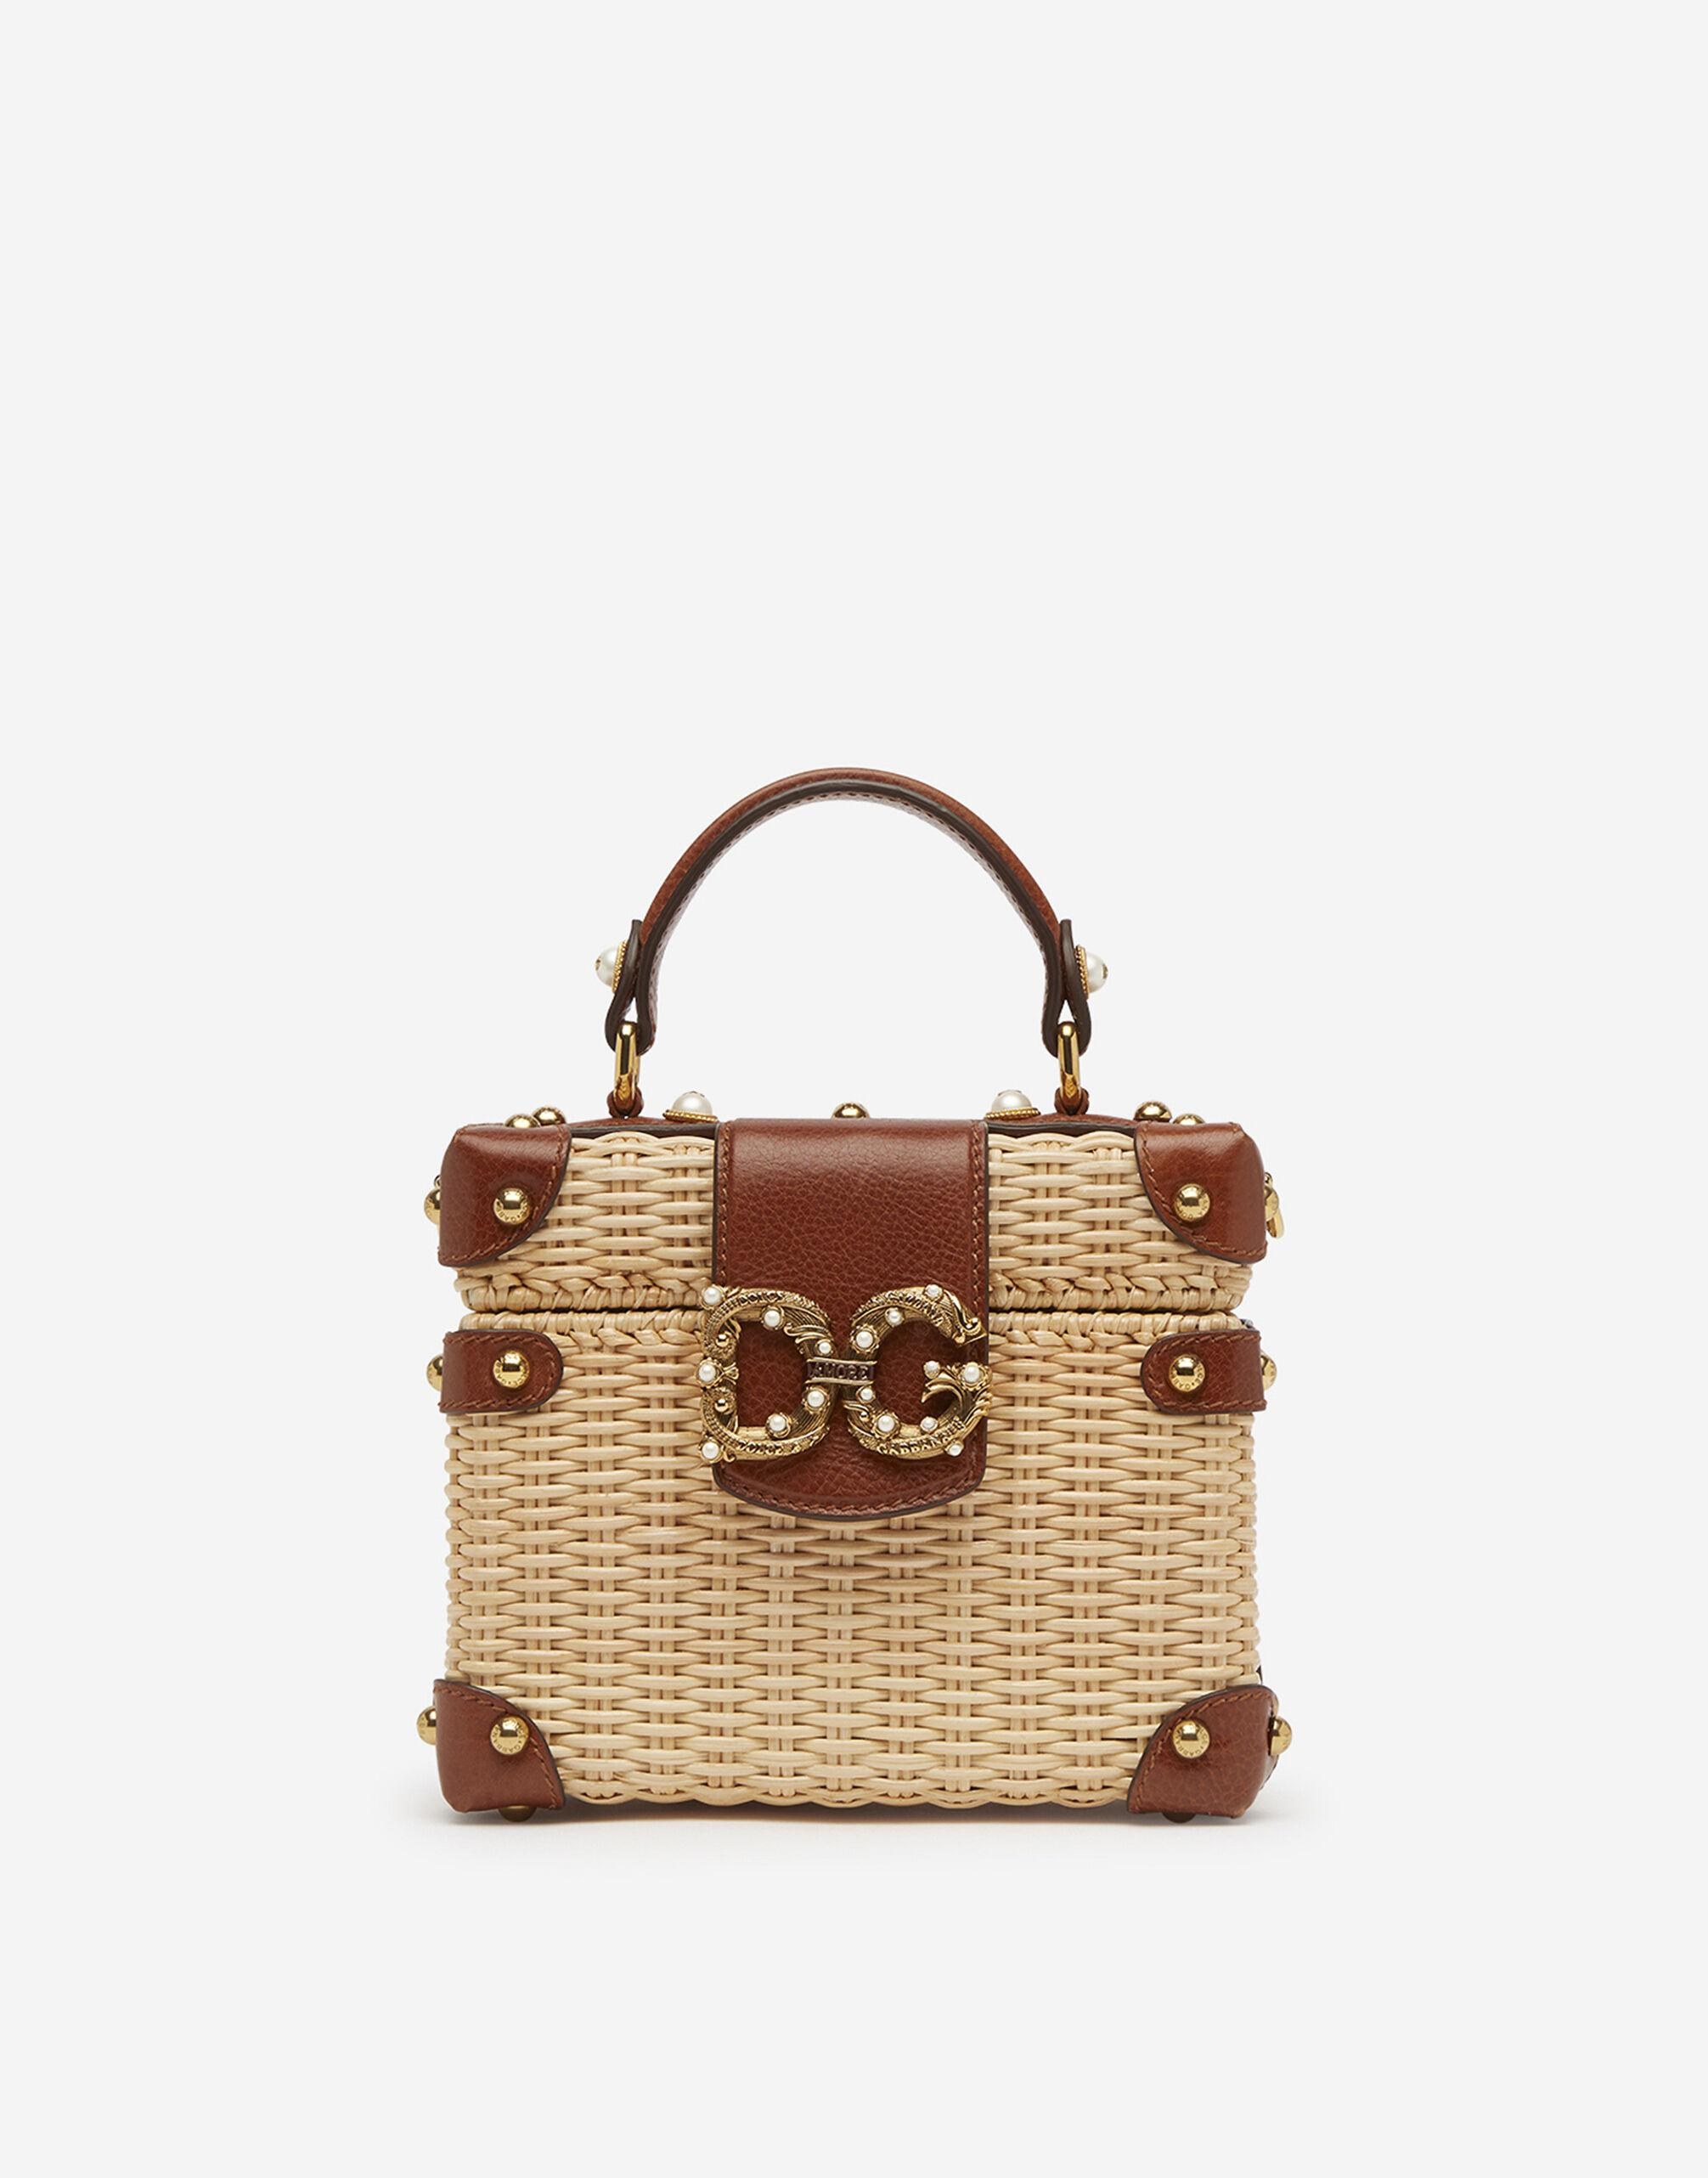 DG Amore box bag in wicker and cowhide